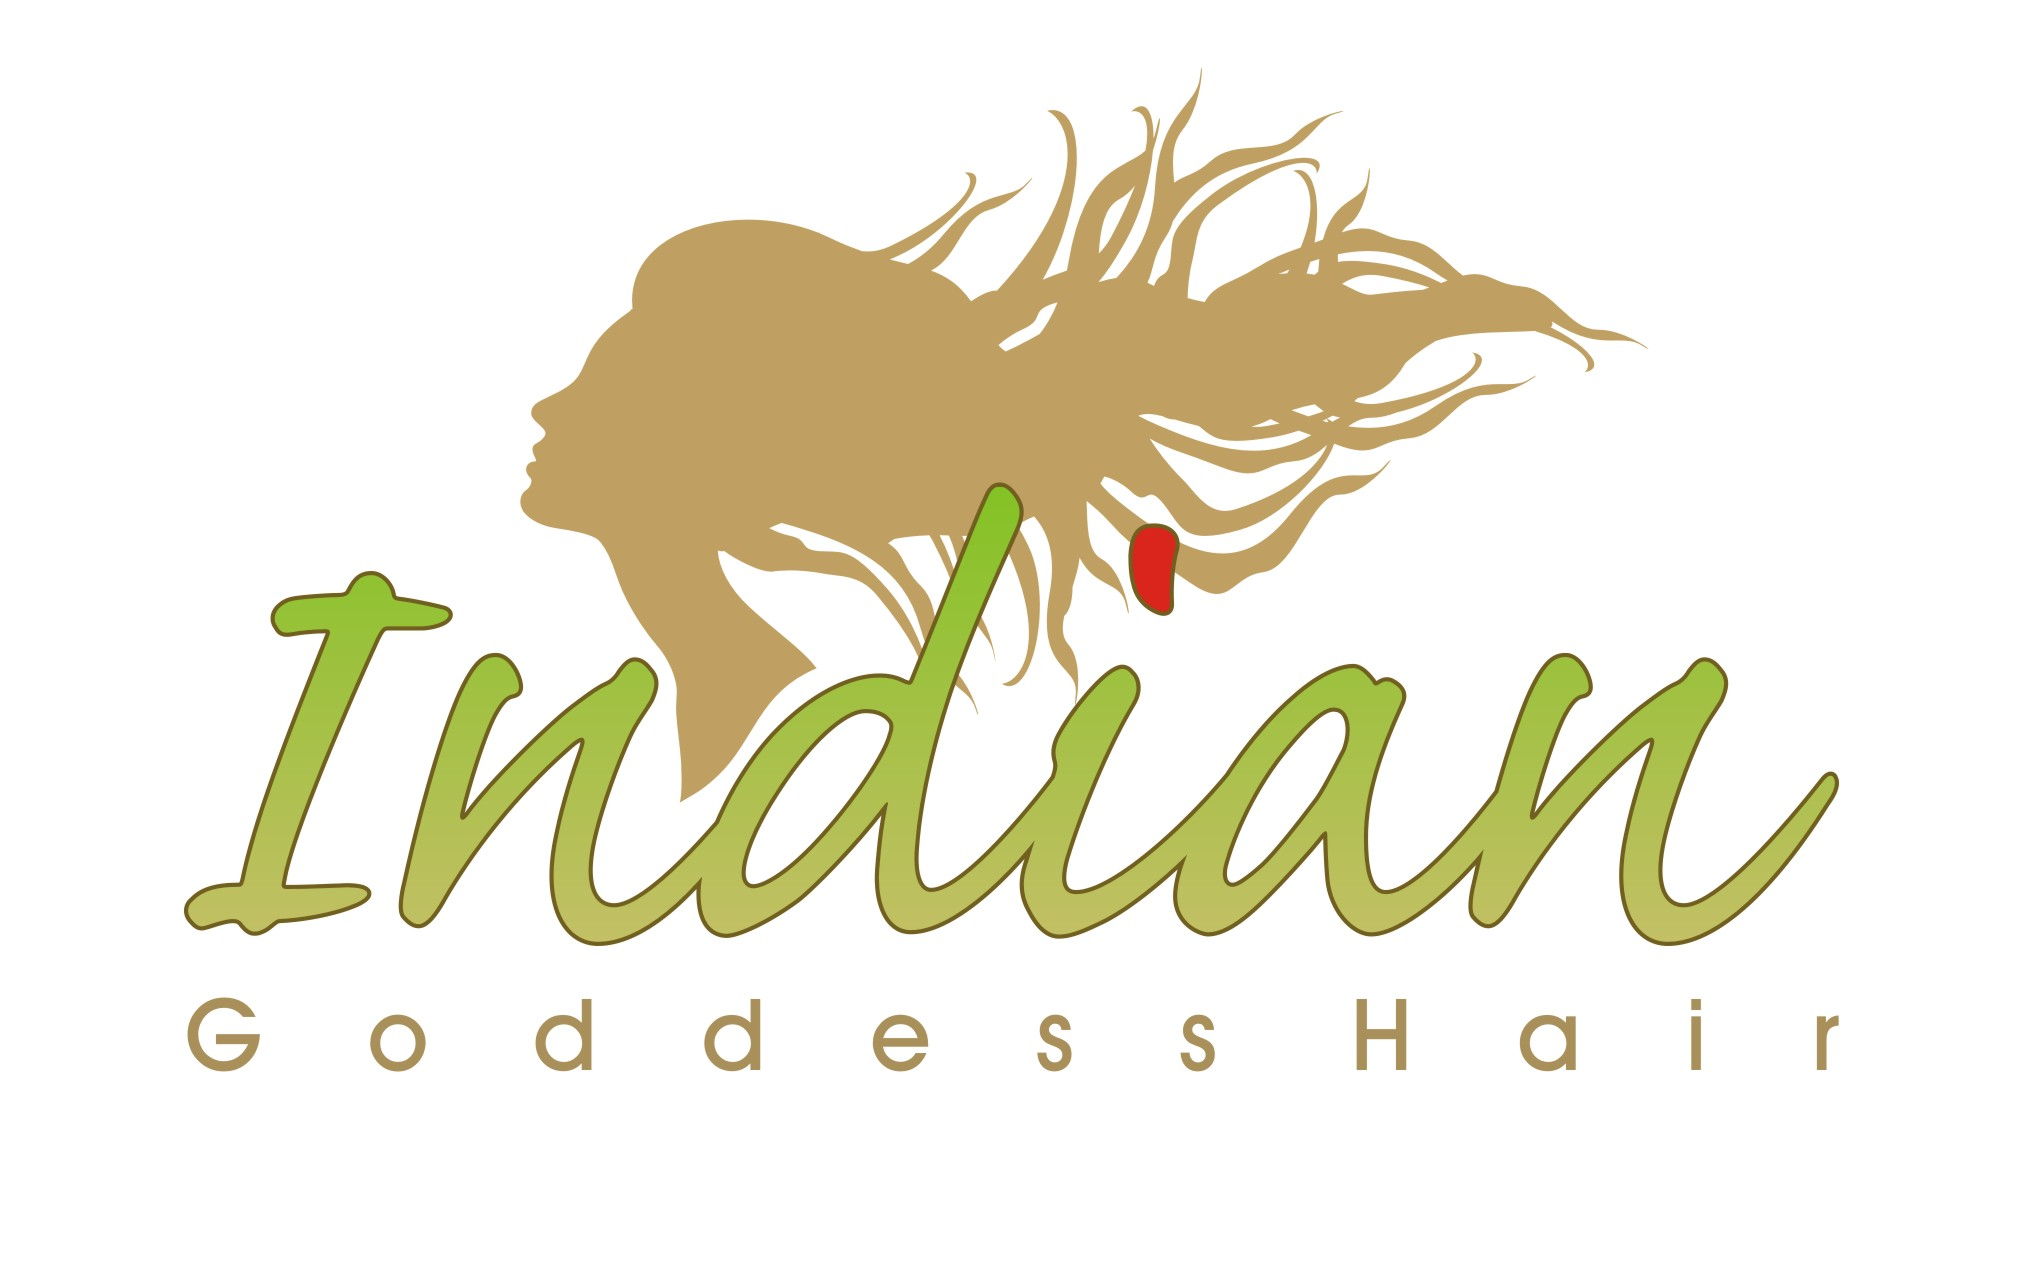 Logo Design by Private User - Entry No. 11 in the Logo Design Contest Indian Goddess Hair LOGO DESIGN.